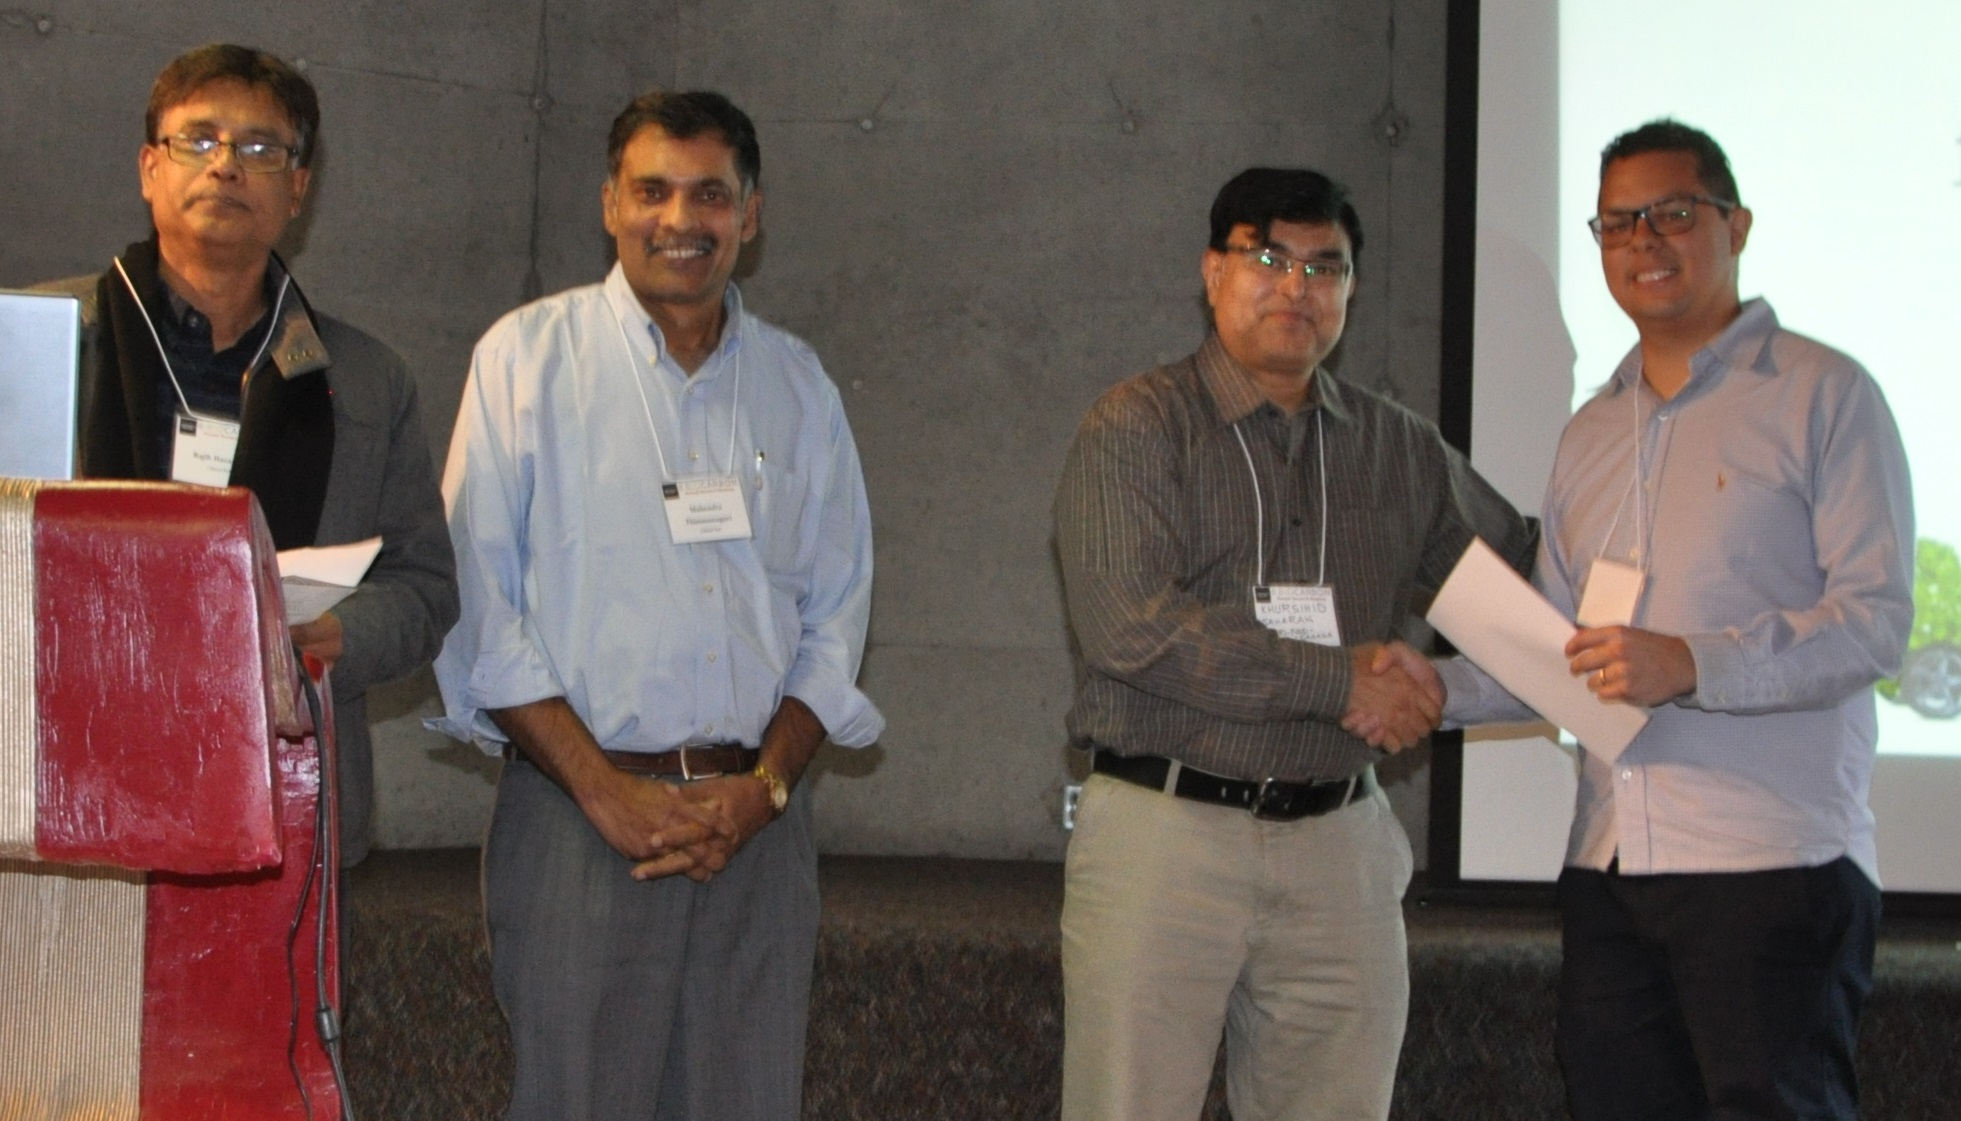 Biocarbon Research Meeting Poster Awards - Third Place